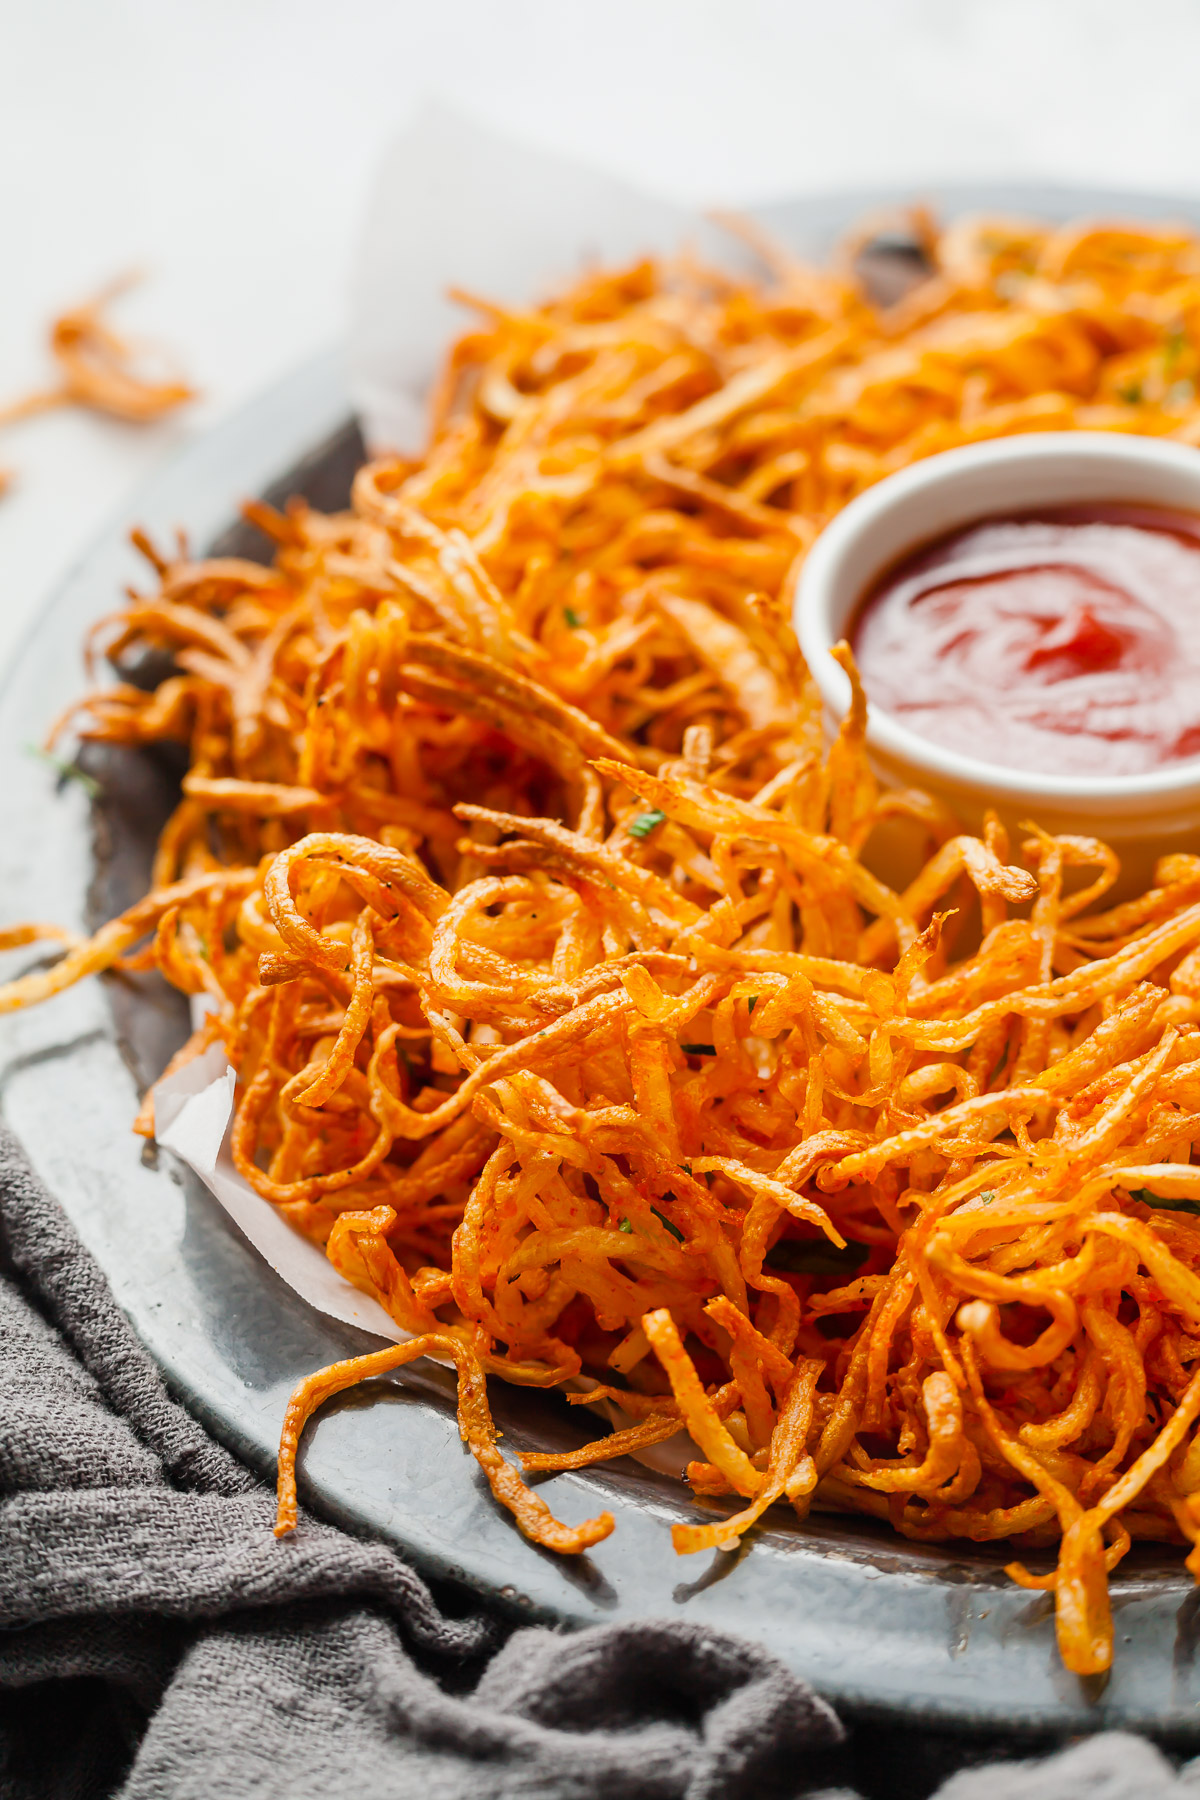 a plate of shoestring french fries with a small dish of ketchup